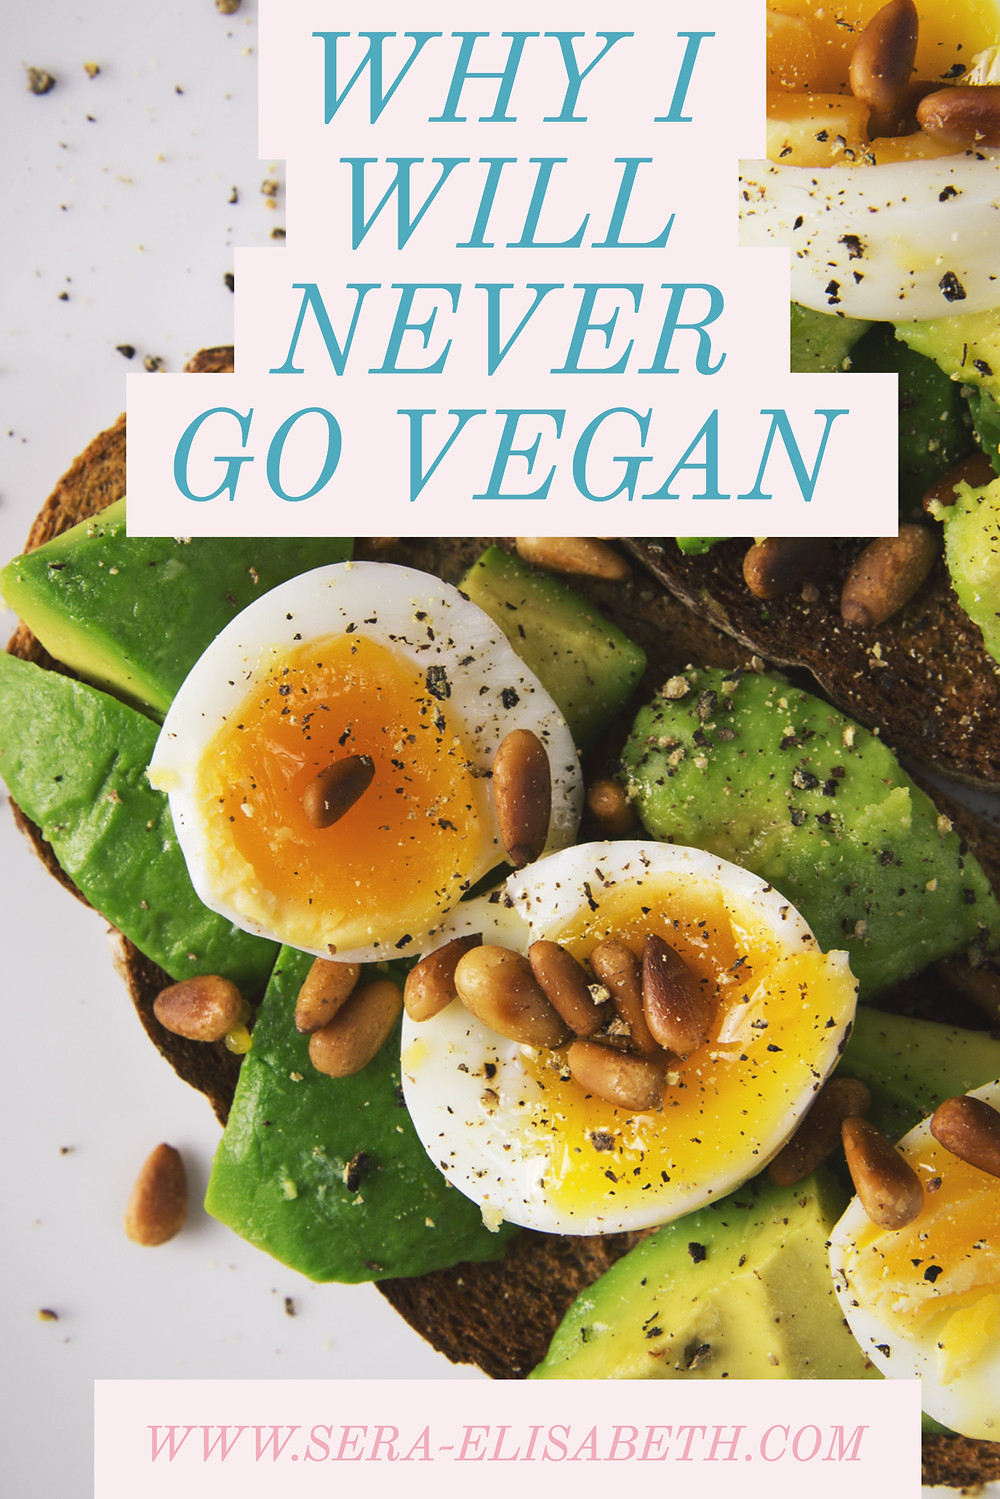 WHY I WILL NEVER GO VEGAN GRAPHIC